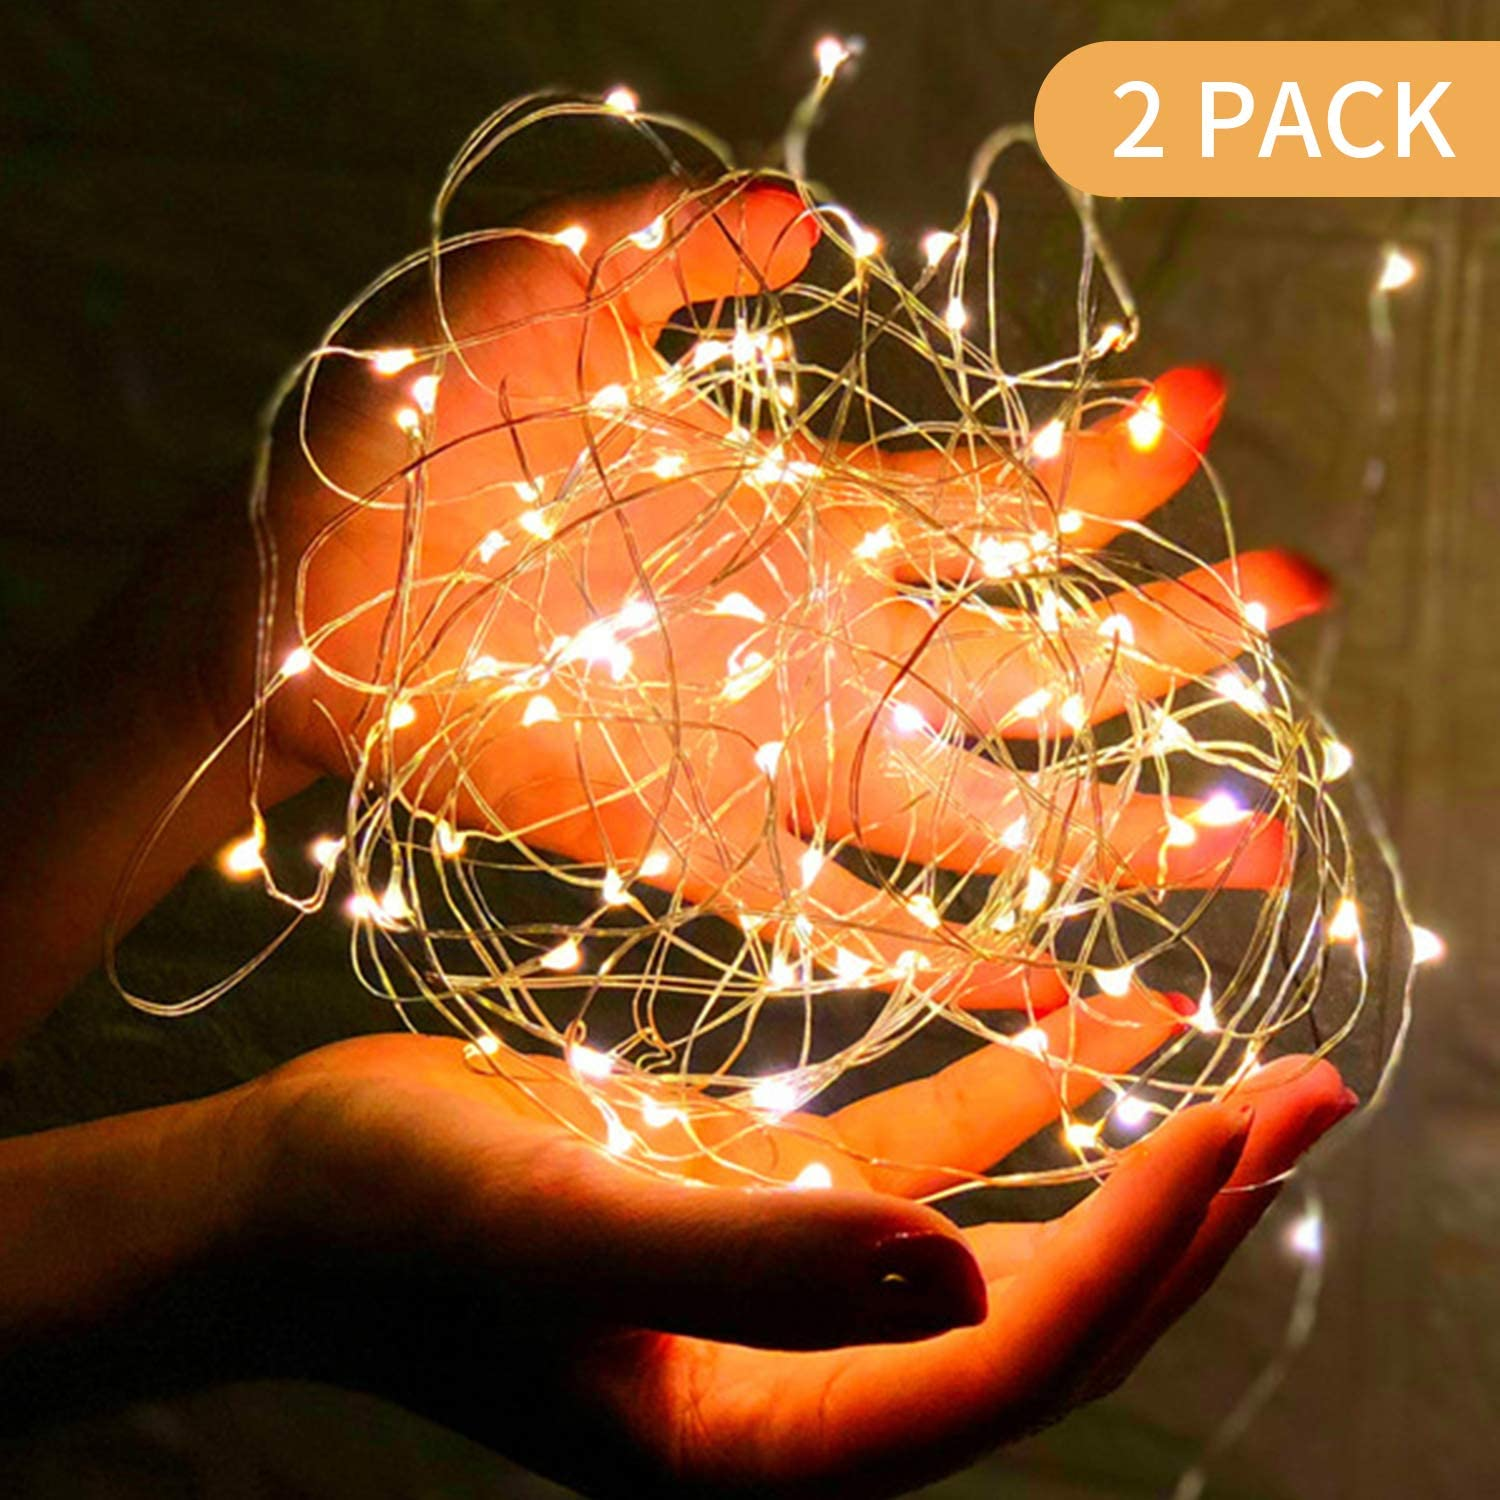 Fairy Battery String Lights, Great Value,Copper Wire,Battery opertated,for Bedroom, Christmas, Parties, Wedding, Centerpiece, Decoration(100 LED/33ft,Warm White)